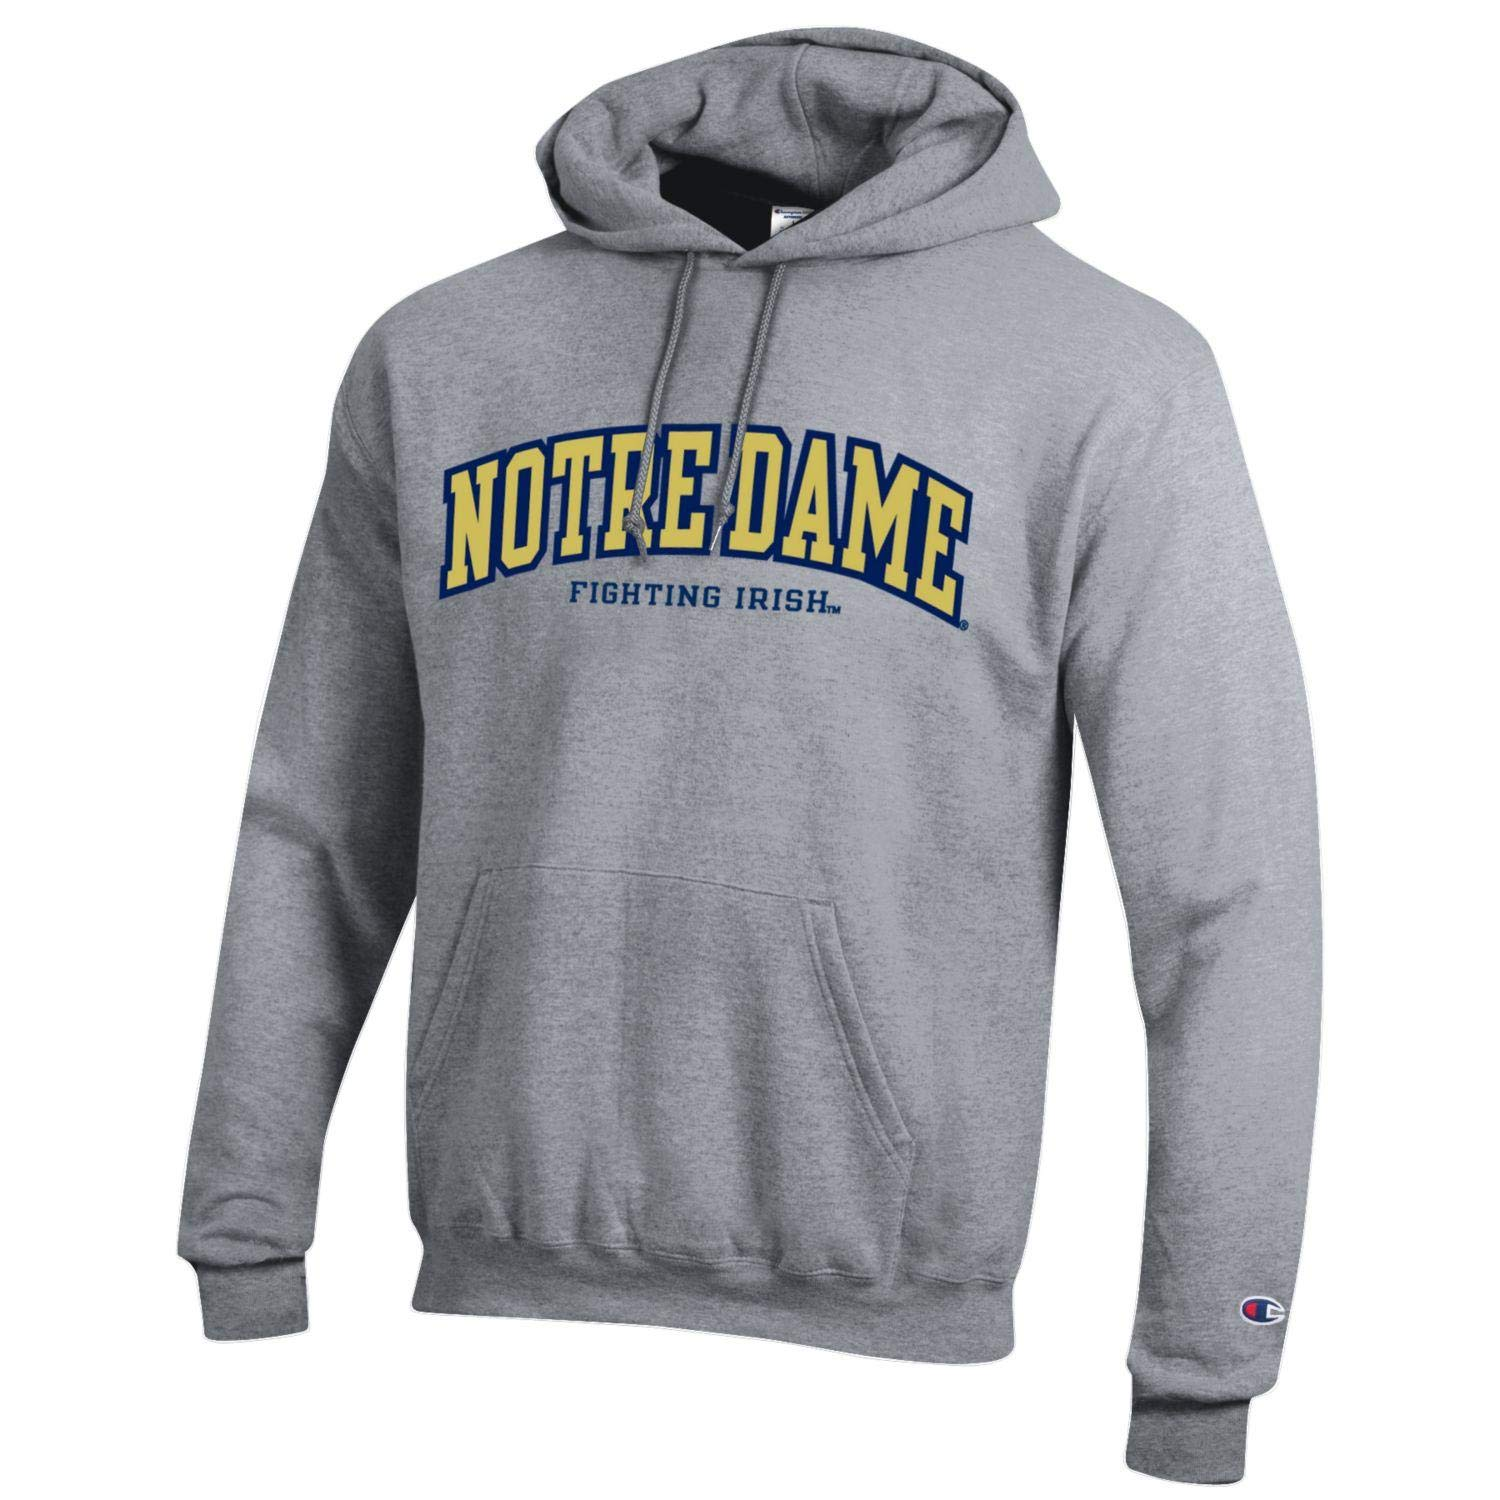 Champion NCAA Men's ECO Power Blend Hooded Sweatshirt with Tackle Twill Embroidered Lettering Classic Heather Grey